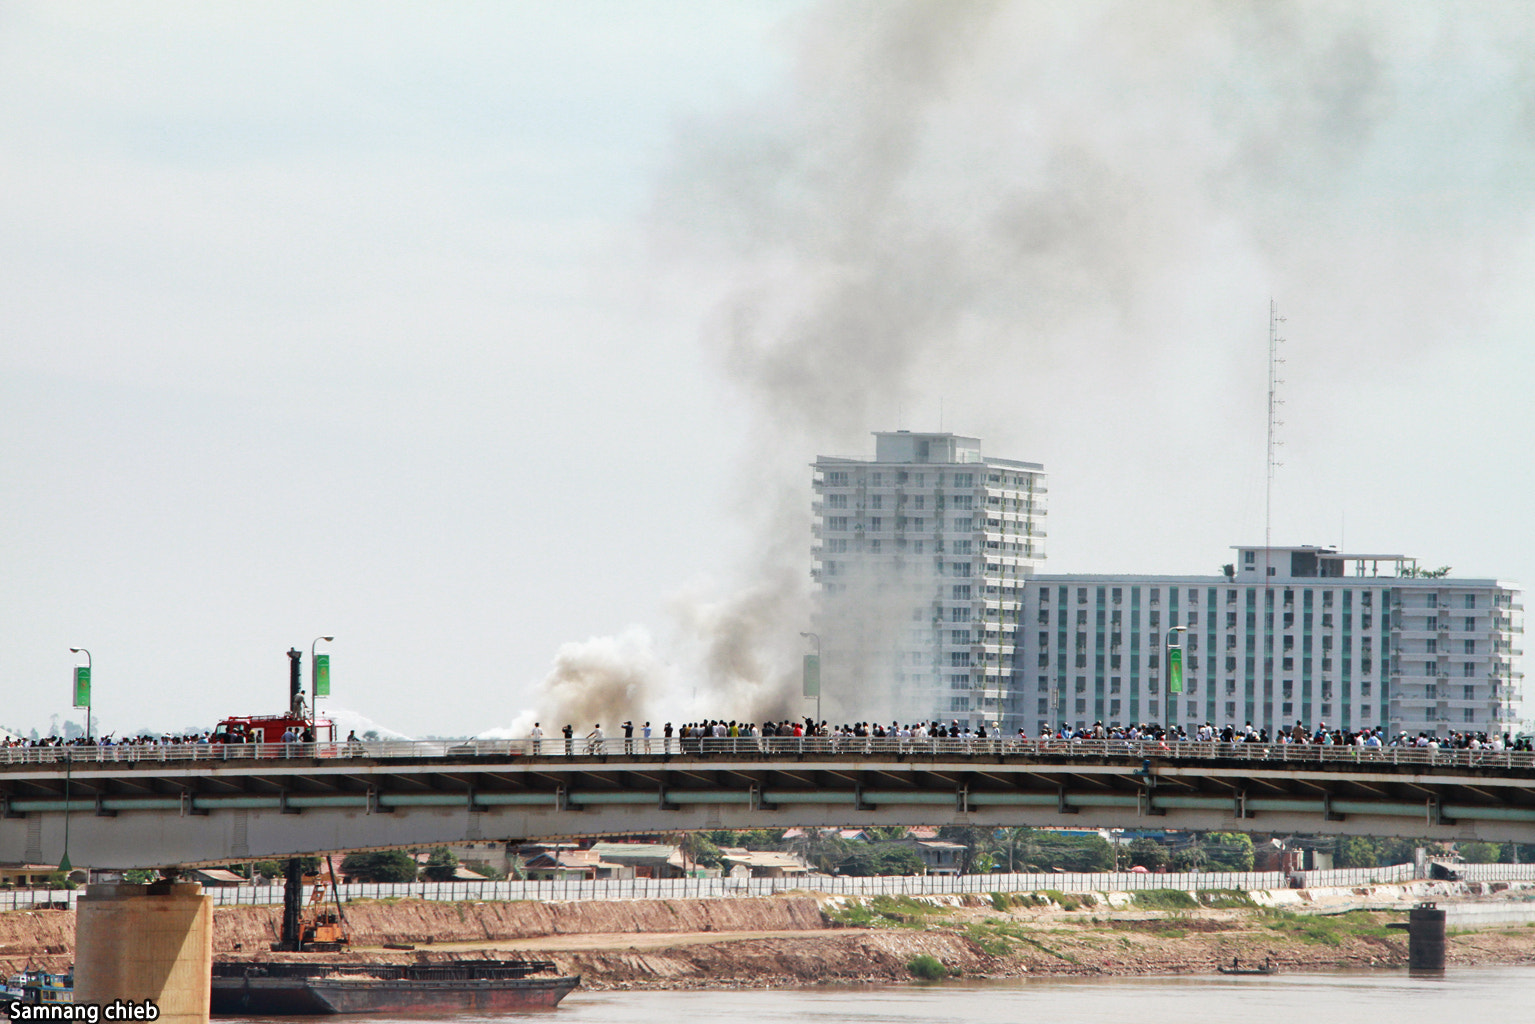 Photograph Fire Car on the Chhrouy Chanva bridge. by samnang chieb on 500px